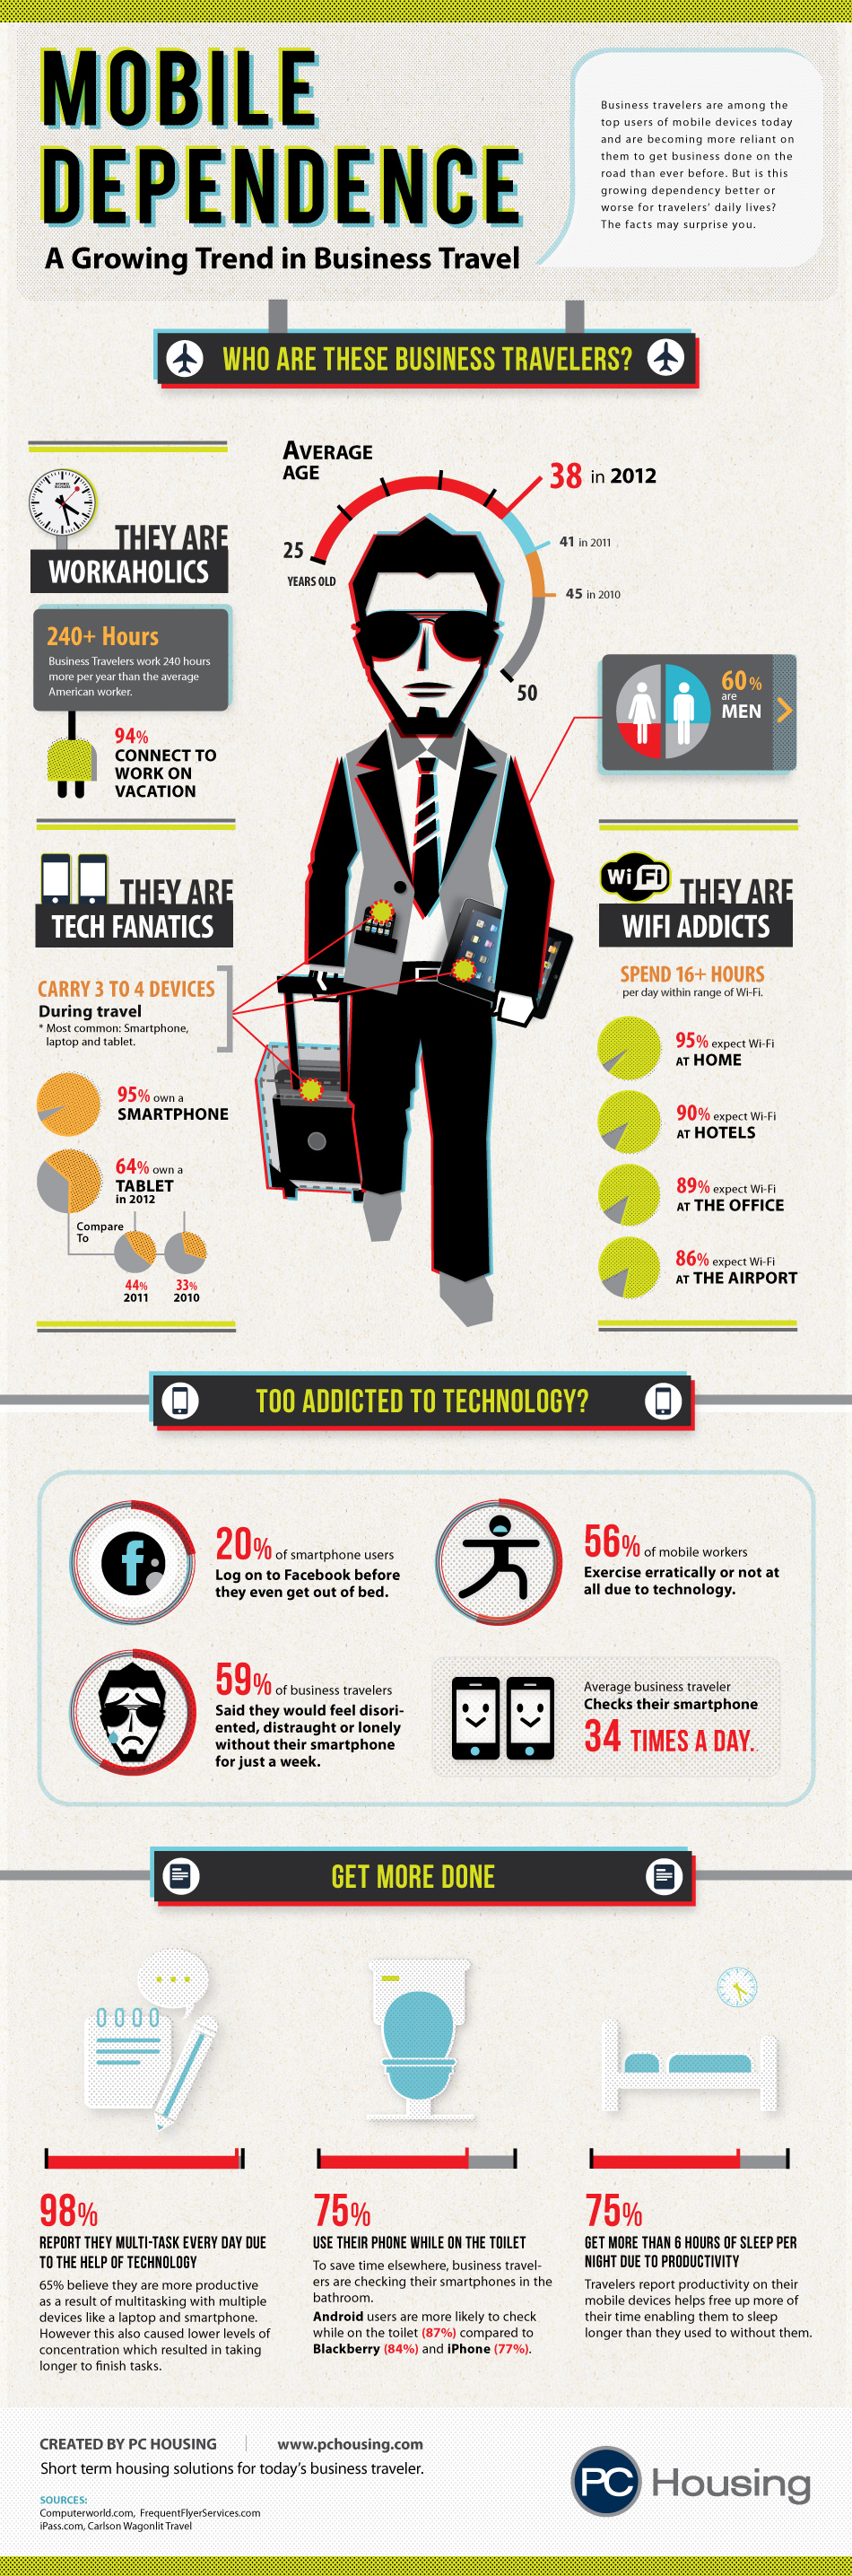 Business Traveler's Mobile Dependence Infographic, created by PC Housing